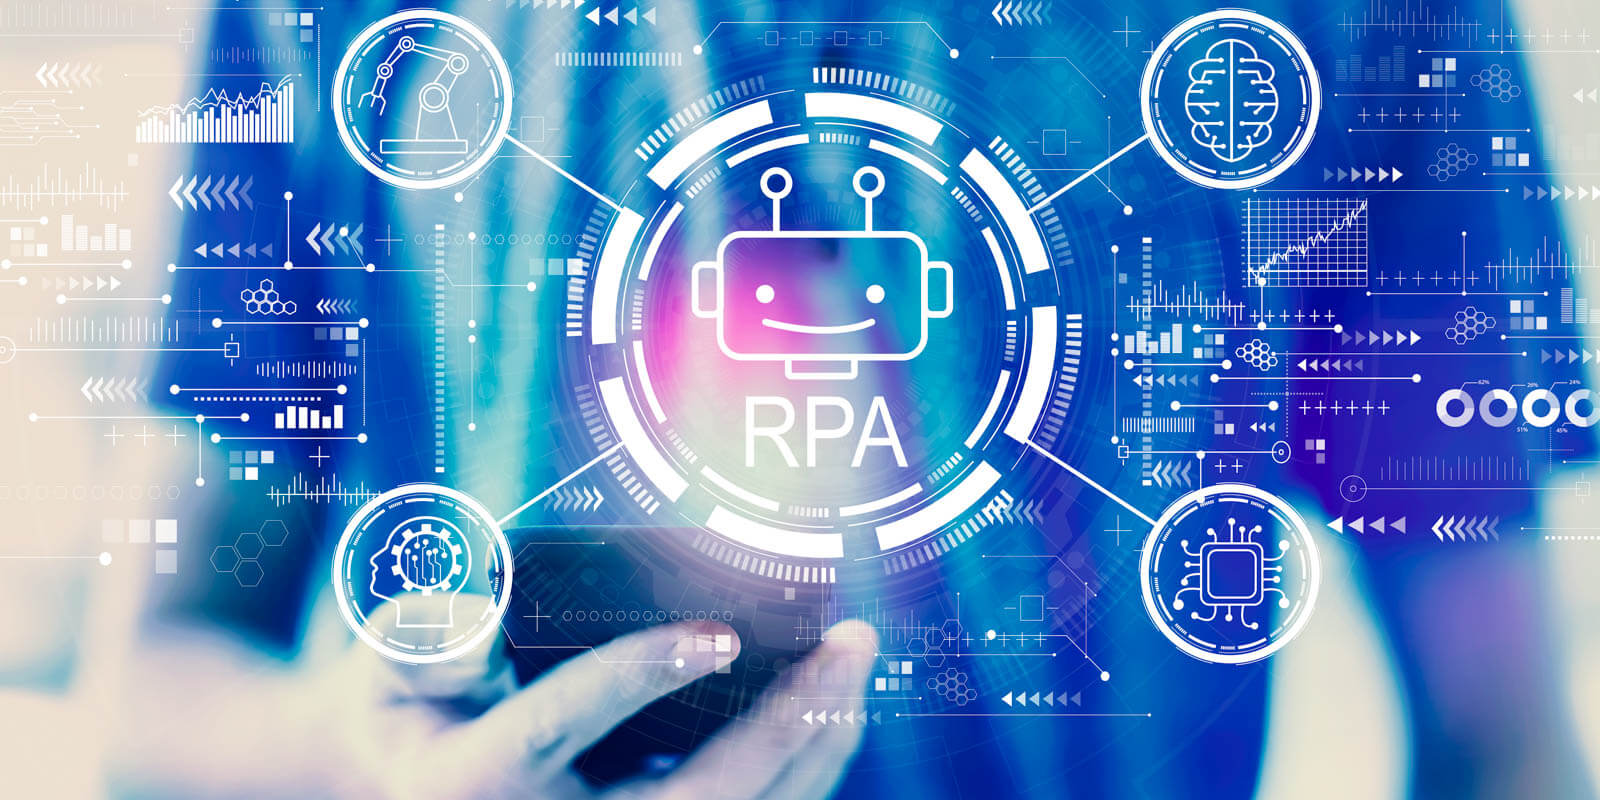 image that shows RPA, robotic process automation